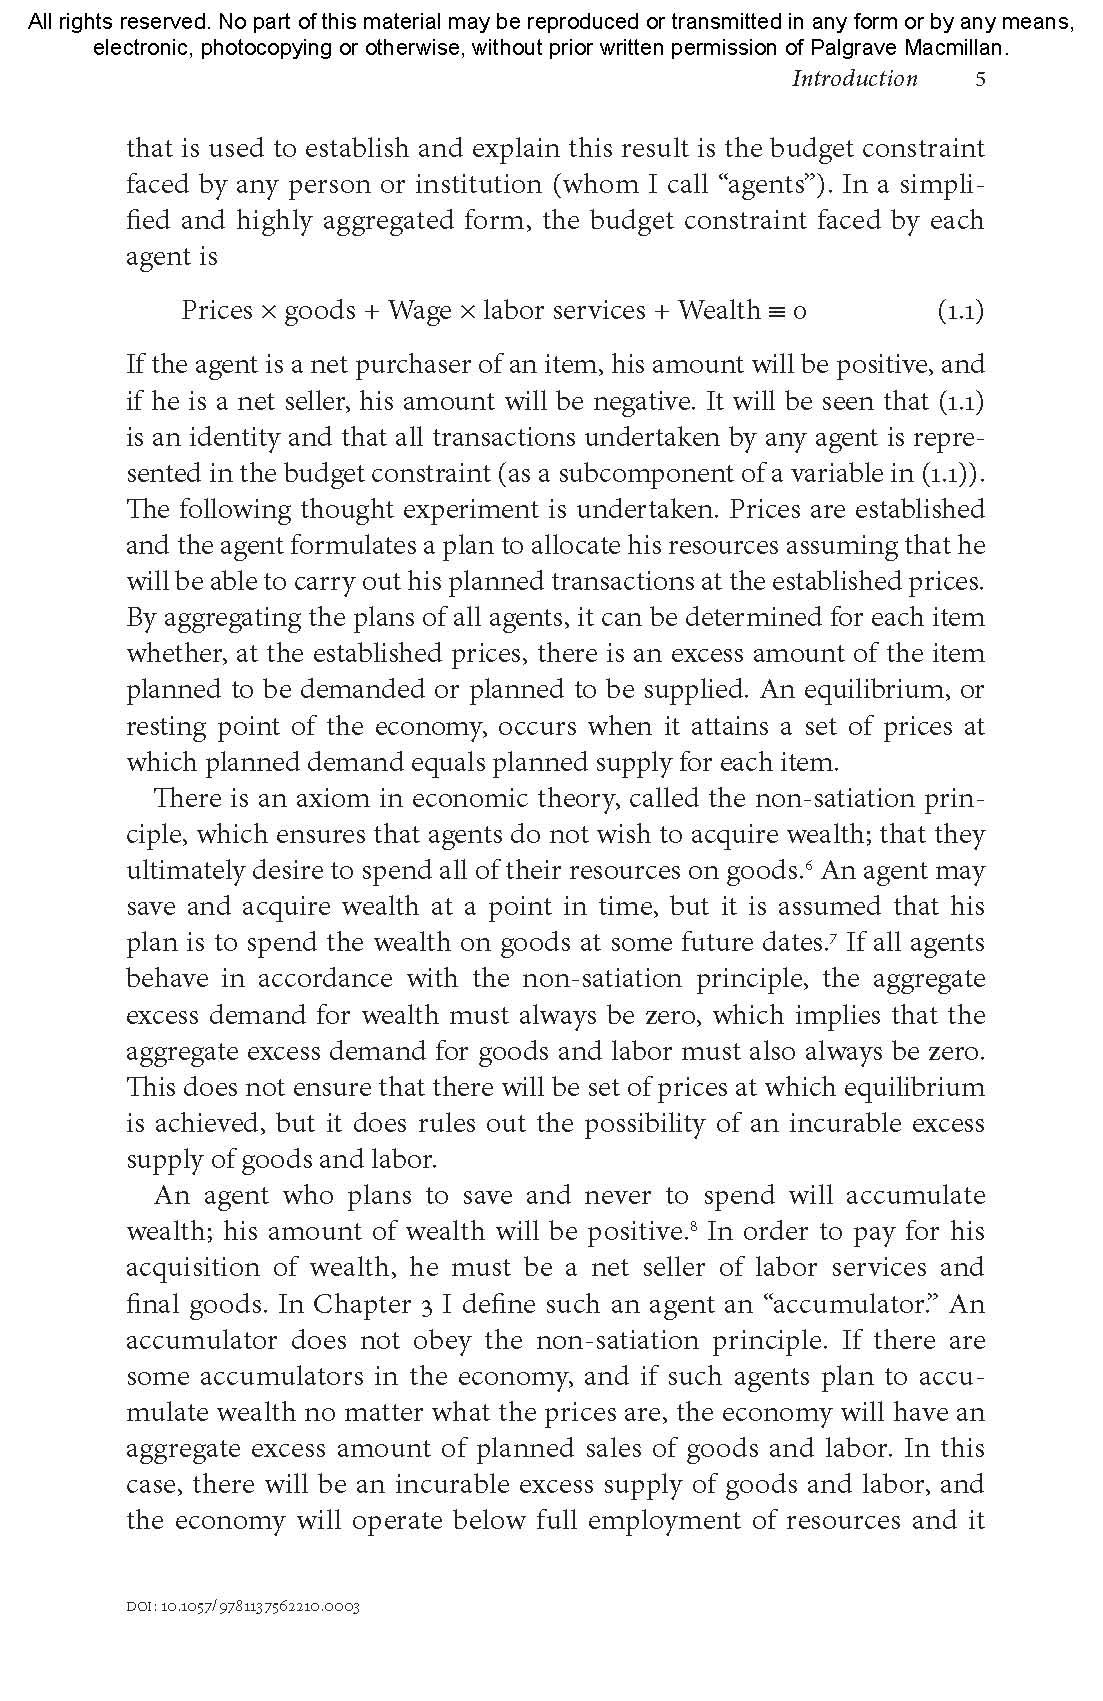 Pages from Accumulation and Secular Stagnation - pdf published book-2_Page_11.jpg